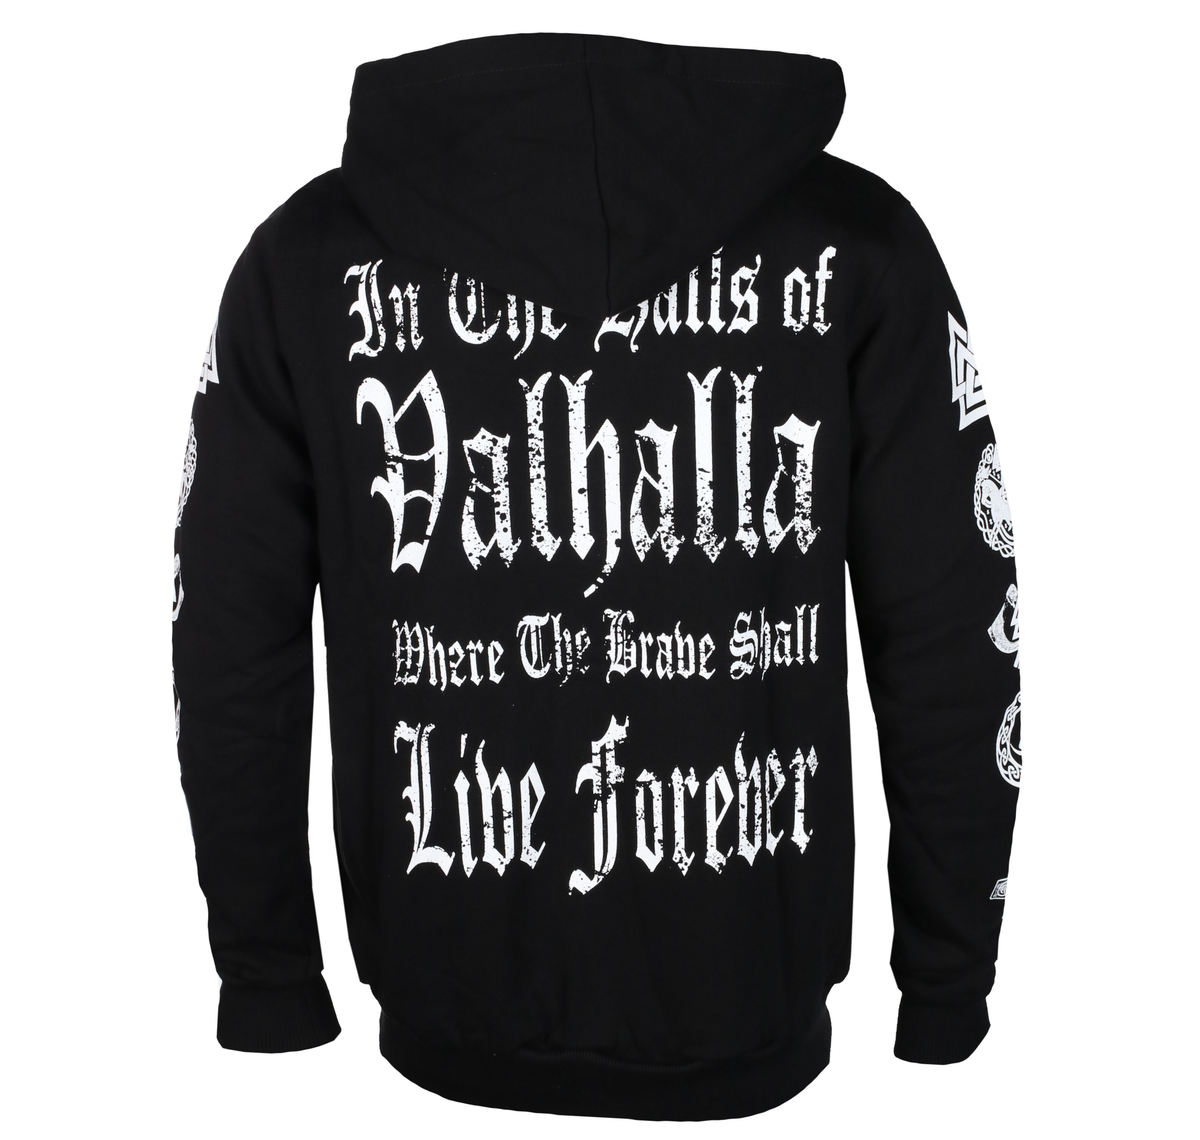 fca73d53a1706 hoodie men s - I AM A WARRIOR - VICTORY OR VALHALLA - VOV005 - metal ...